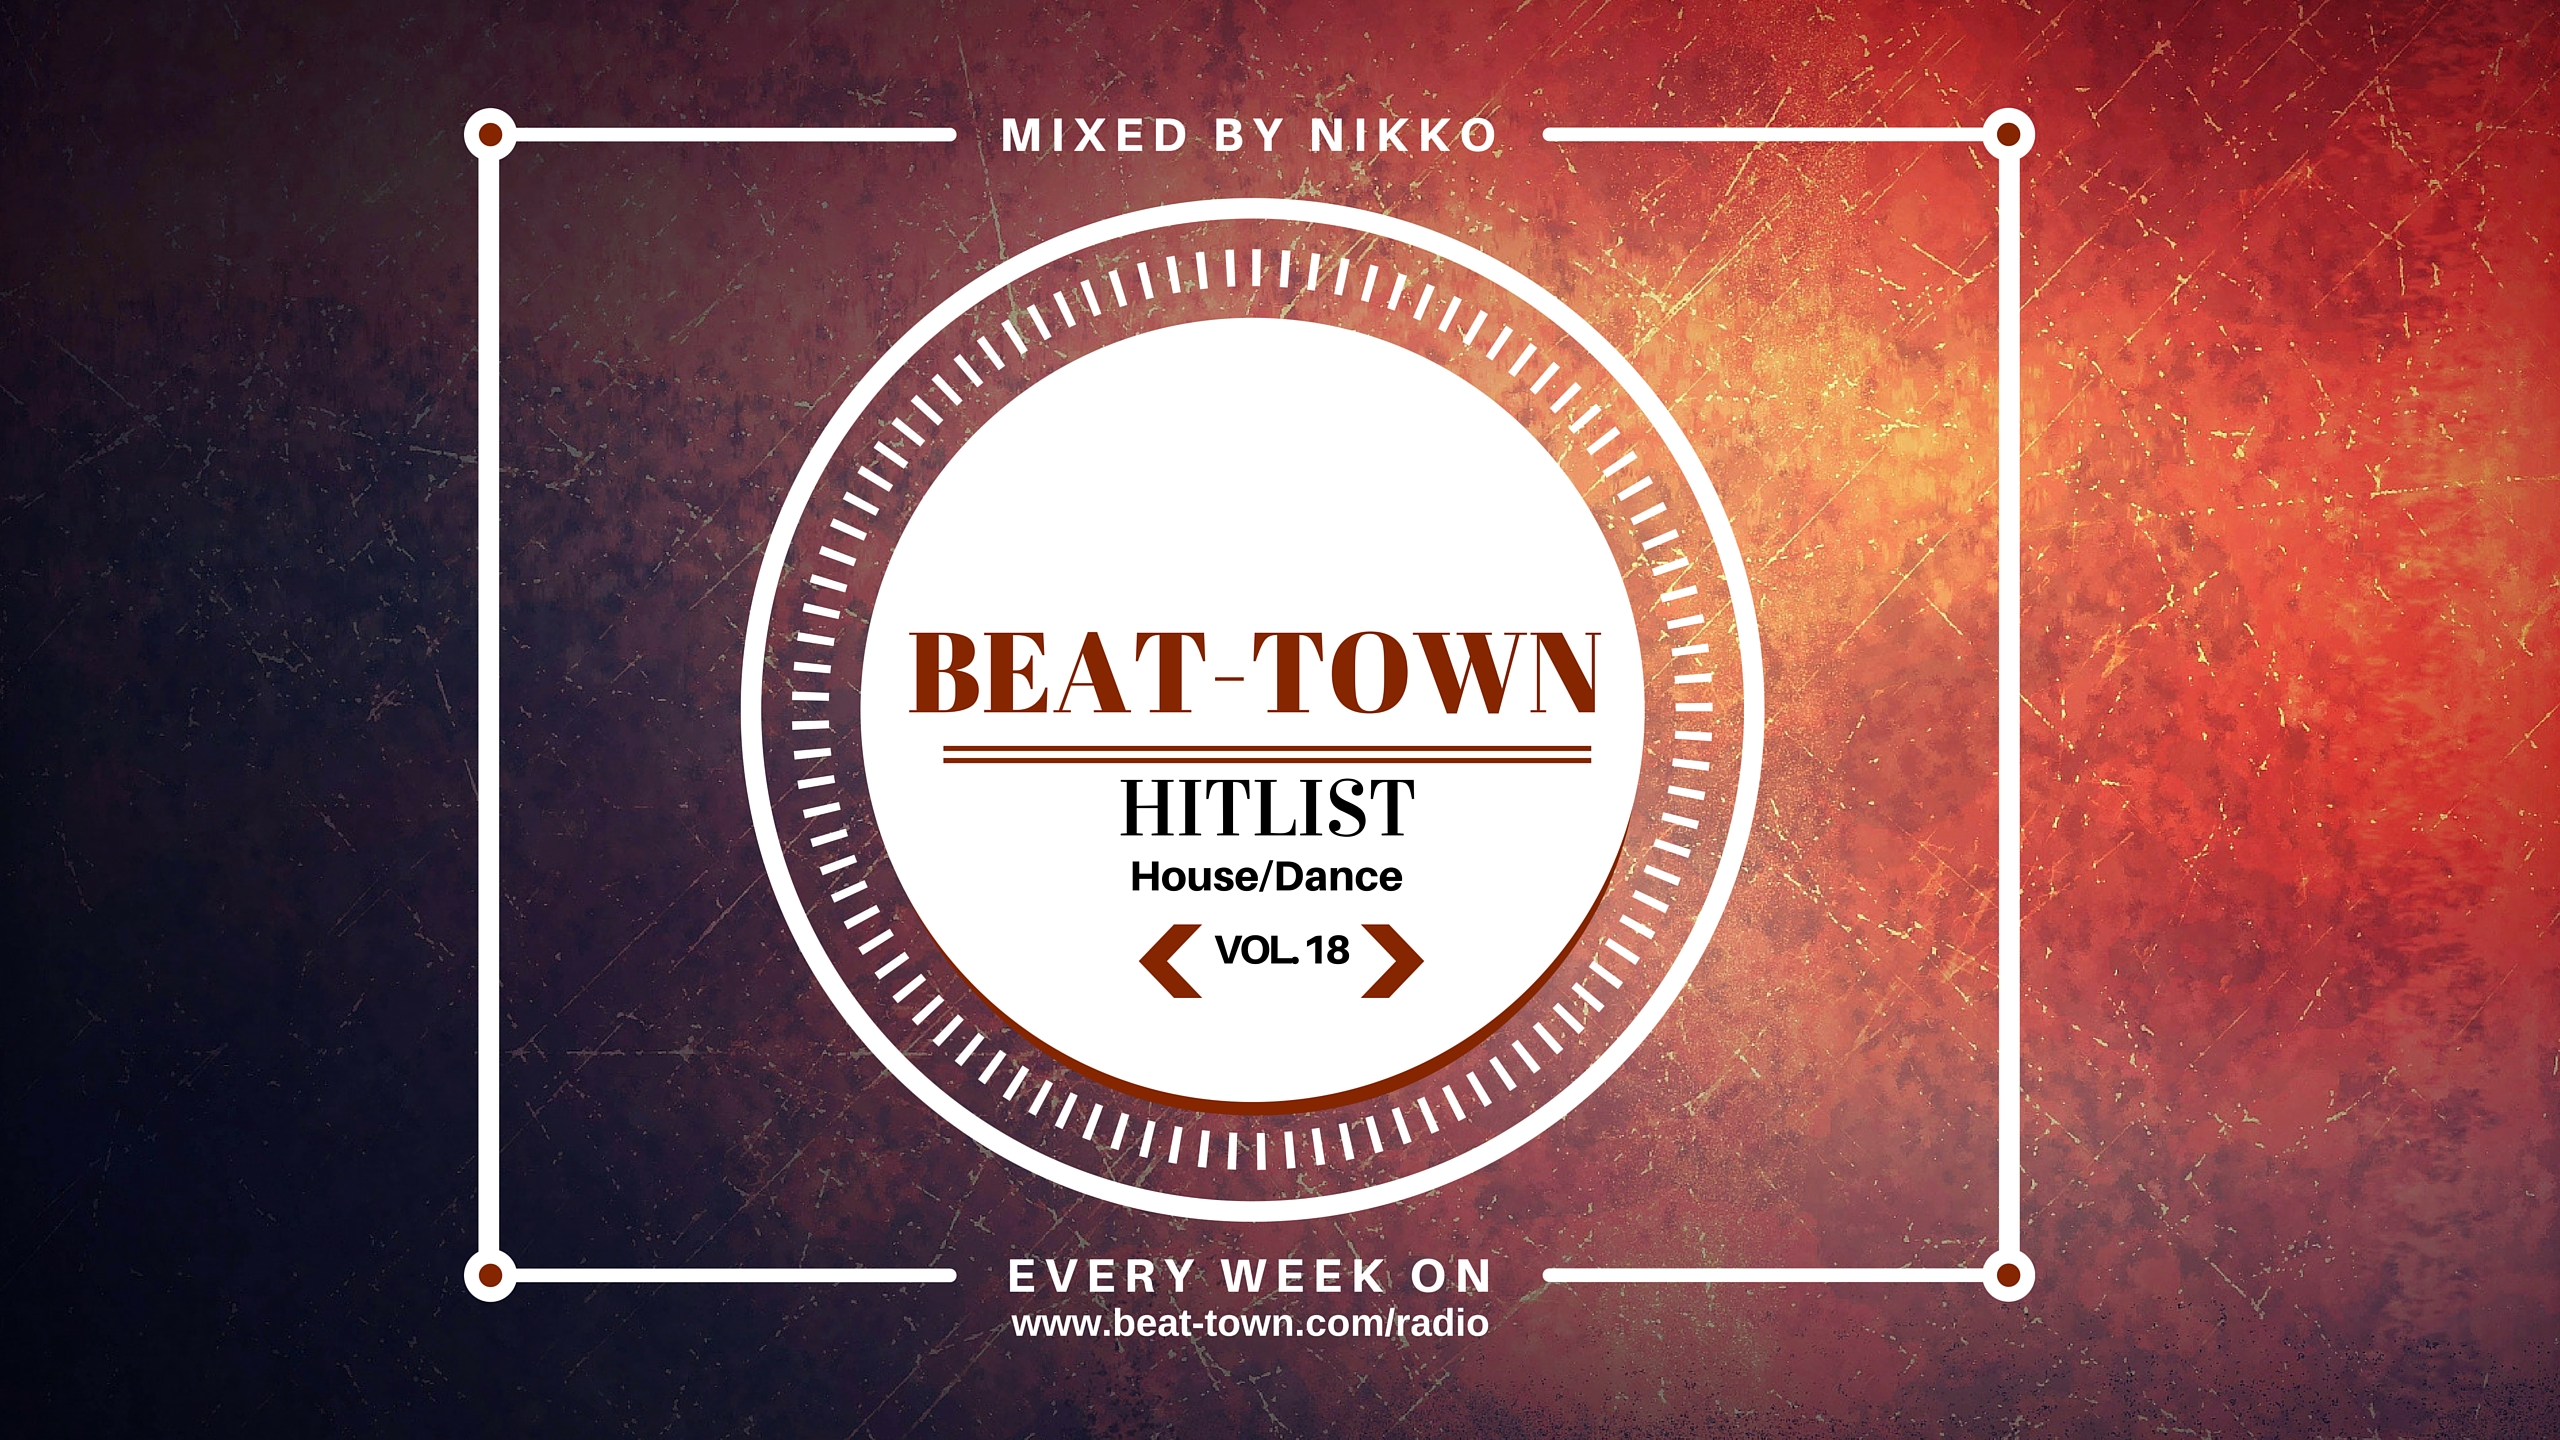 Beat-Town Radio: Hitlist Vol. 18 (House/Dance)